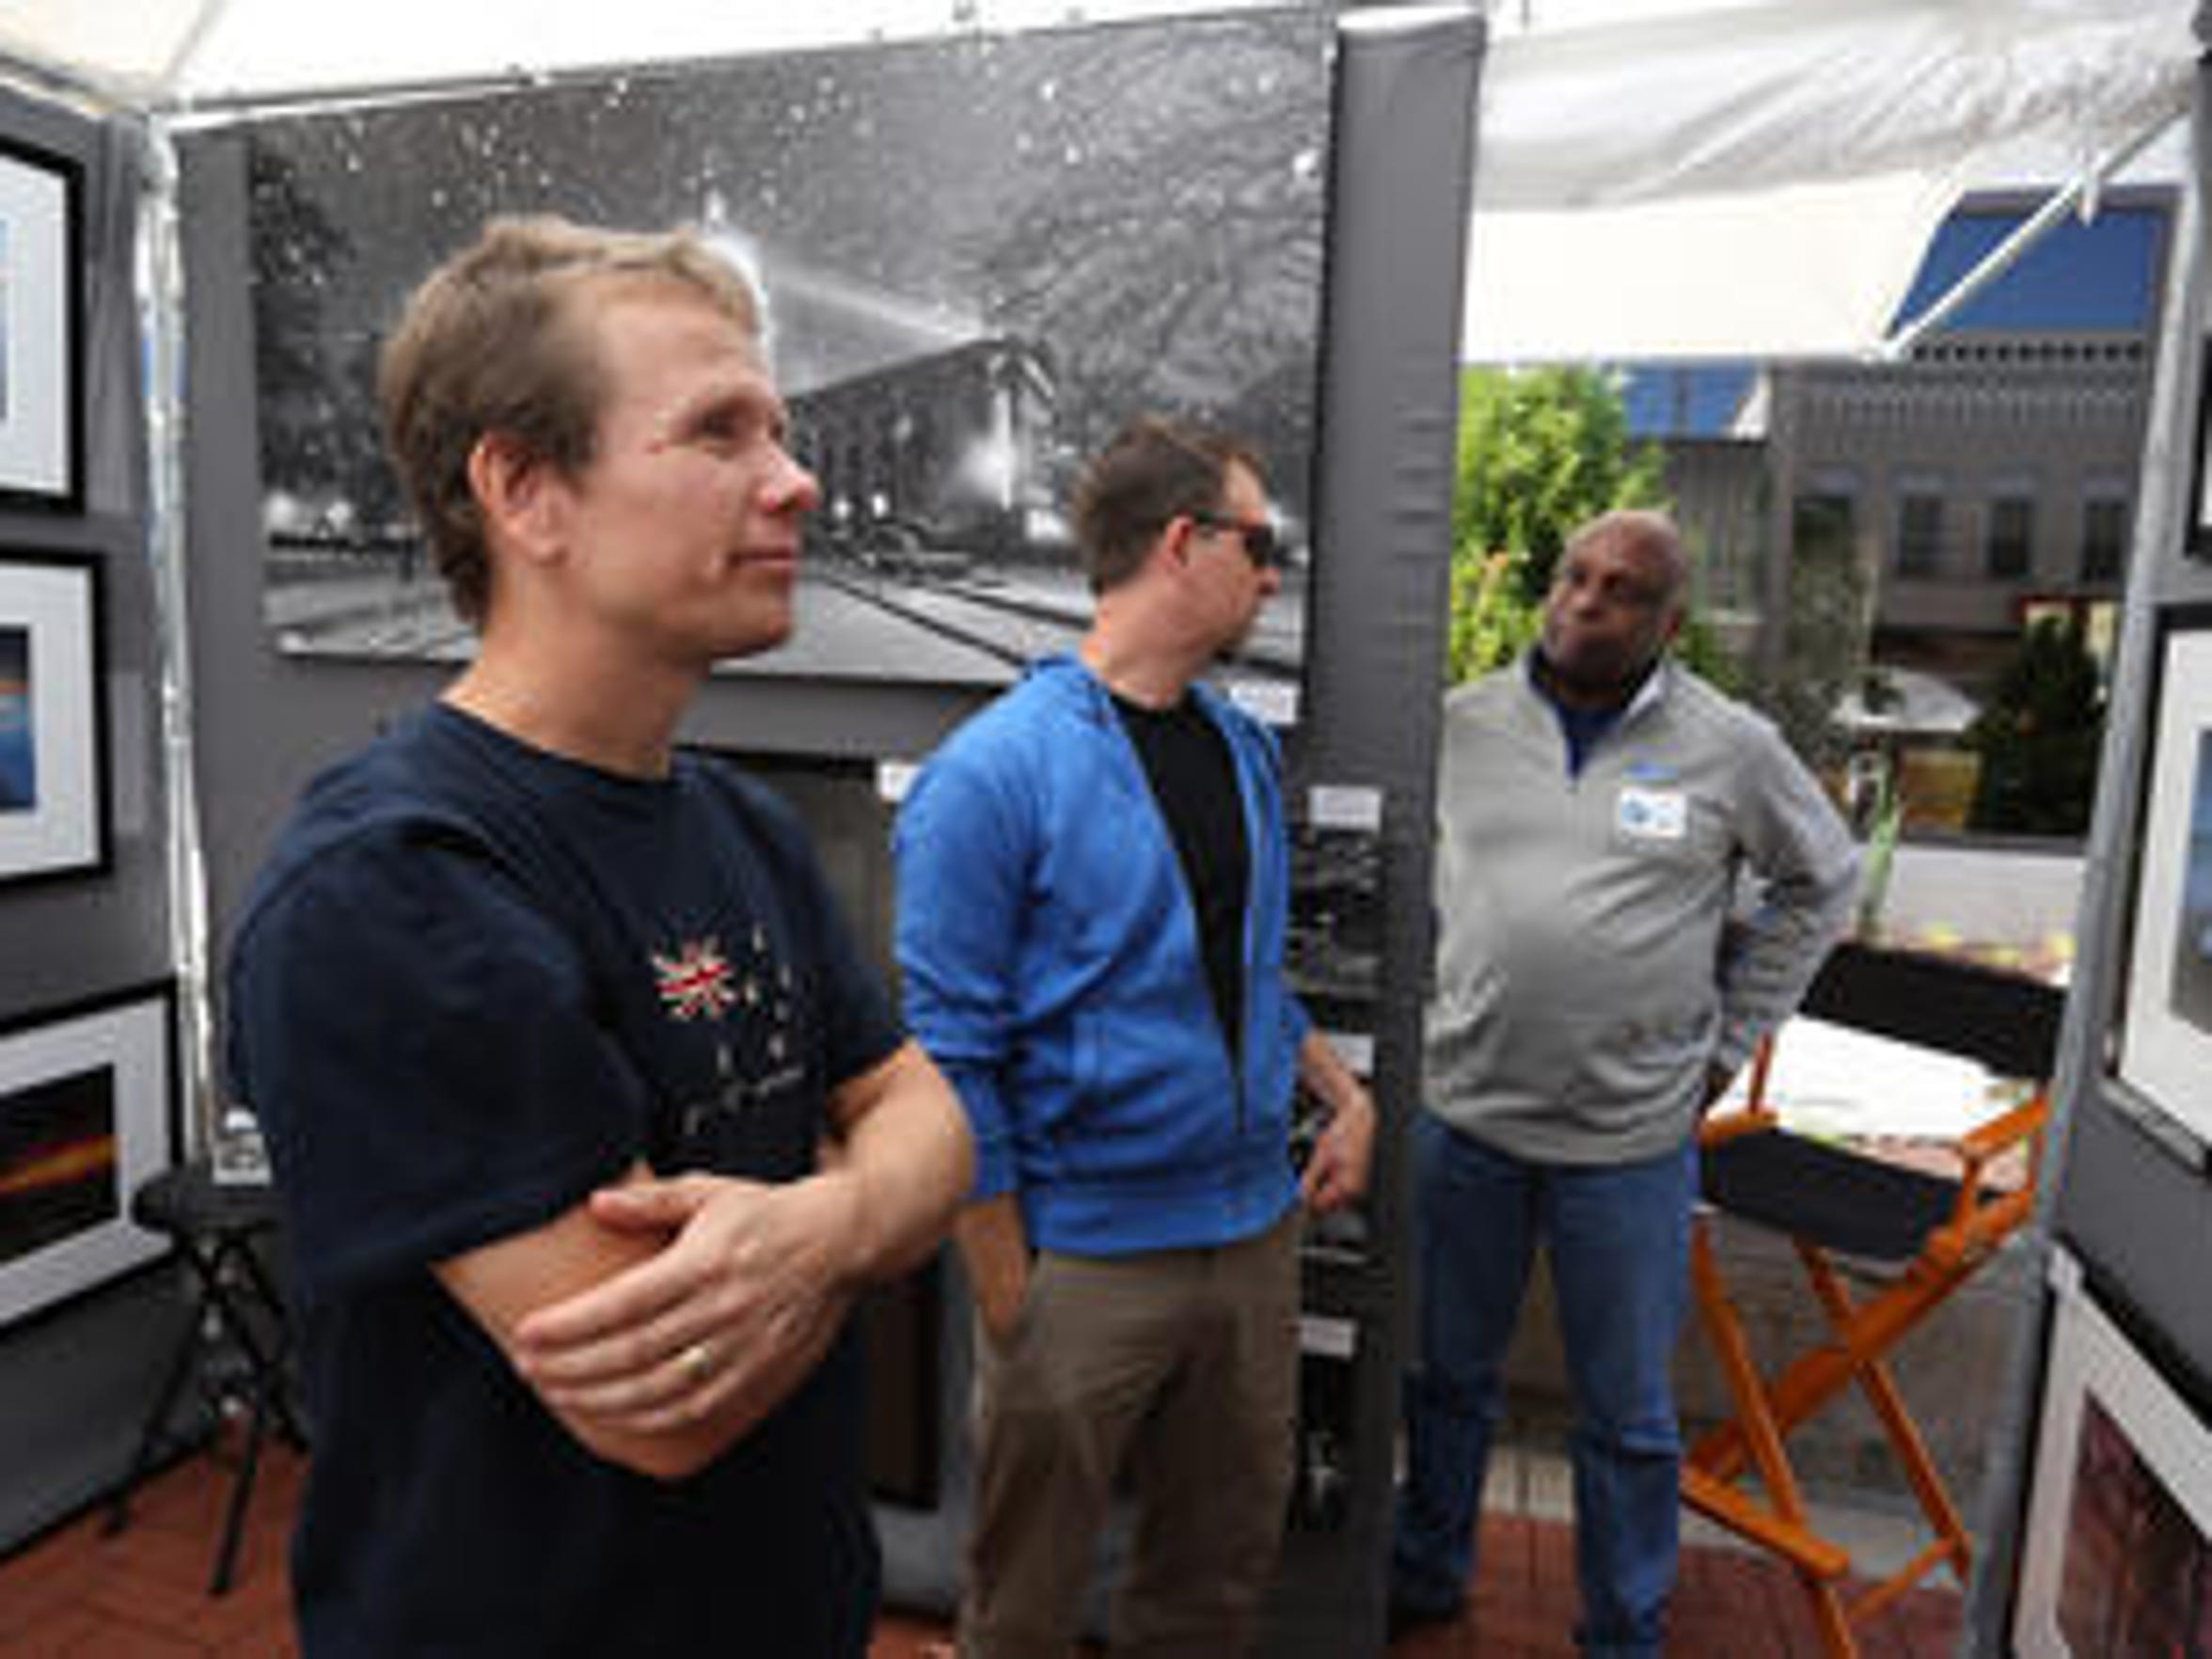 Markus Szillat of Auckland, New Zealand, left, looks at the photographs of Cassius Callender, background right, of Stoughton during the Festival of Arts in downtown Wausau during Artrageous Weekend, Saturday, September 12, 2015. Rick LaFrambois, Wausau, center, talks with Callender.